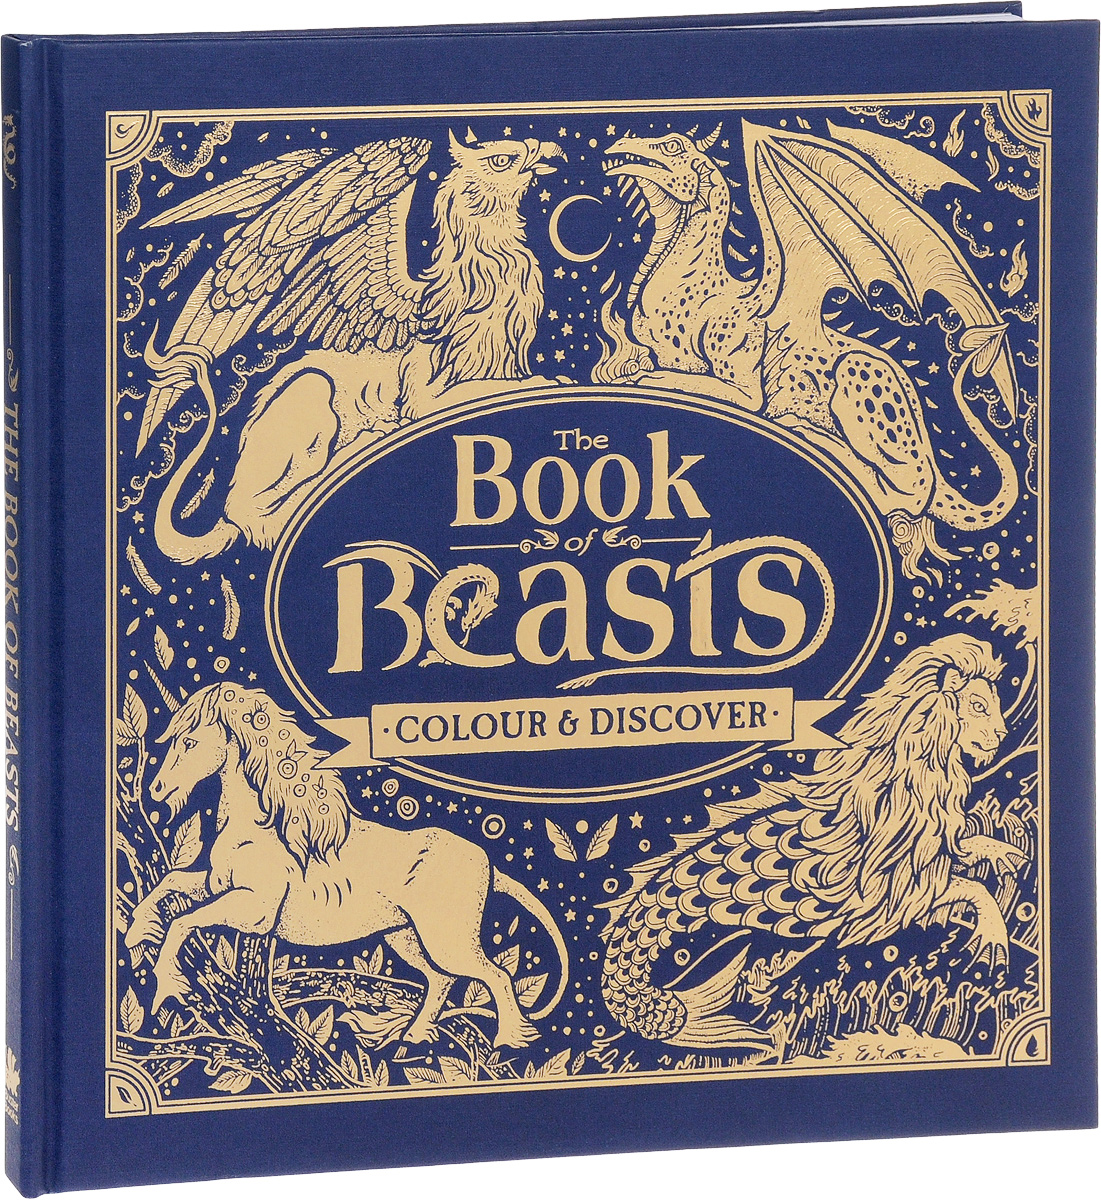 The Book of Beasts: Colour & Discover british museum around the world colouring book